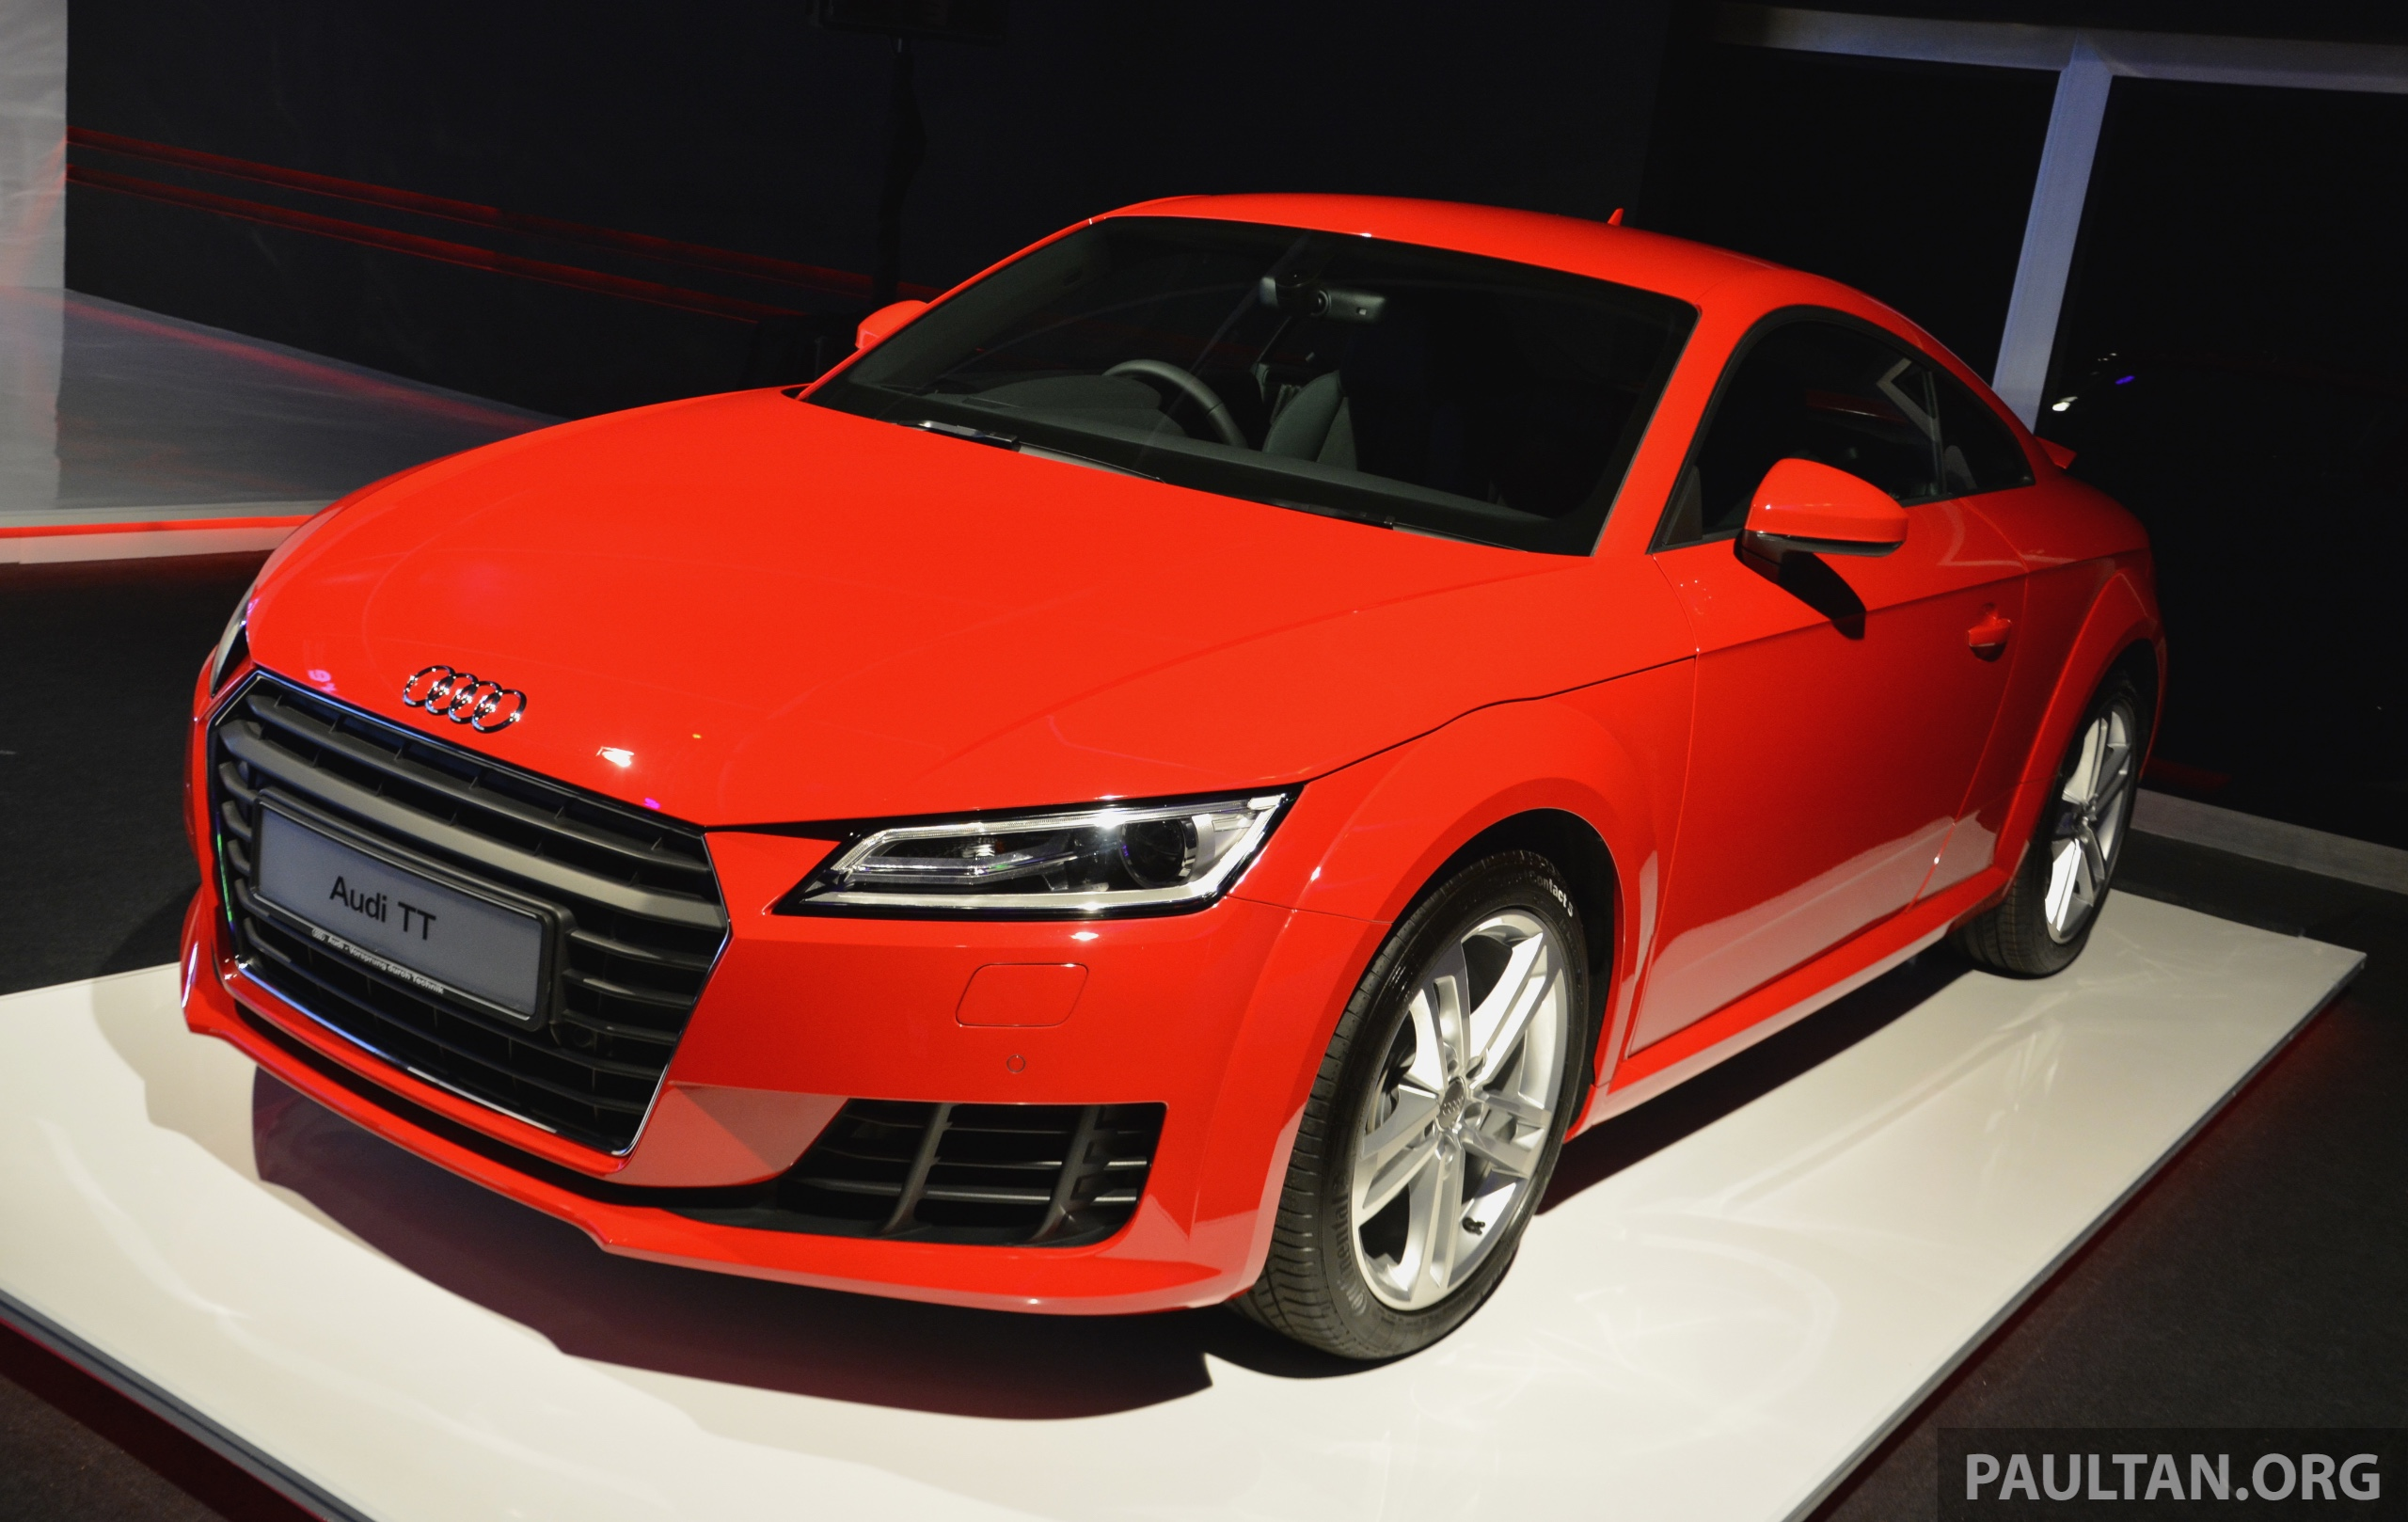 new audi tt launched in malaysia 2 0 tfsi rm285k. Black Bedroom Furniture Sets. Home Design Ideas